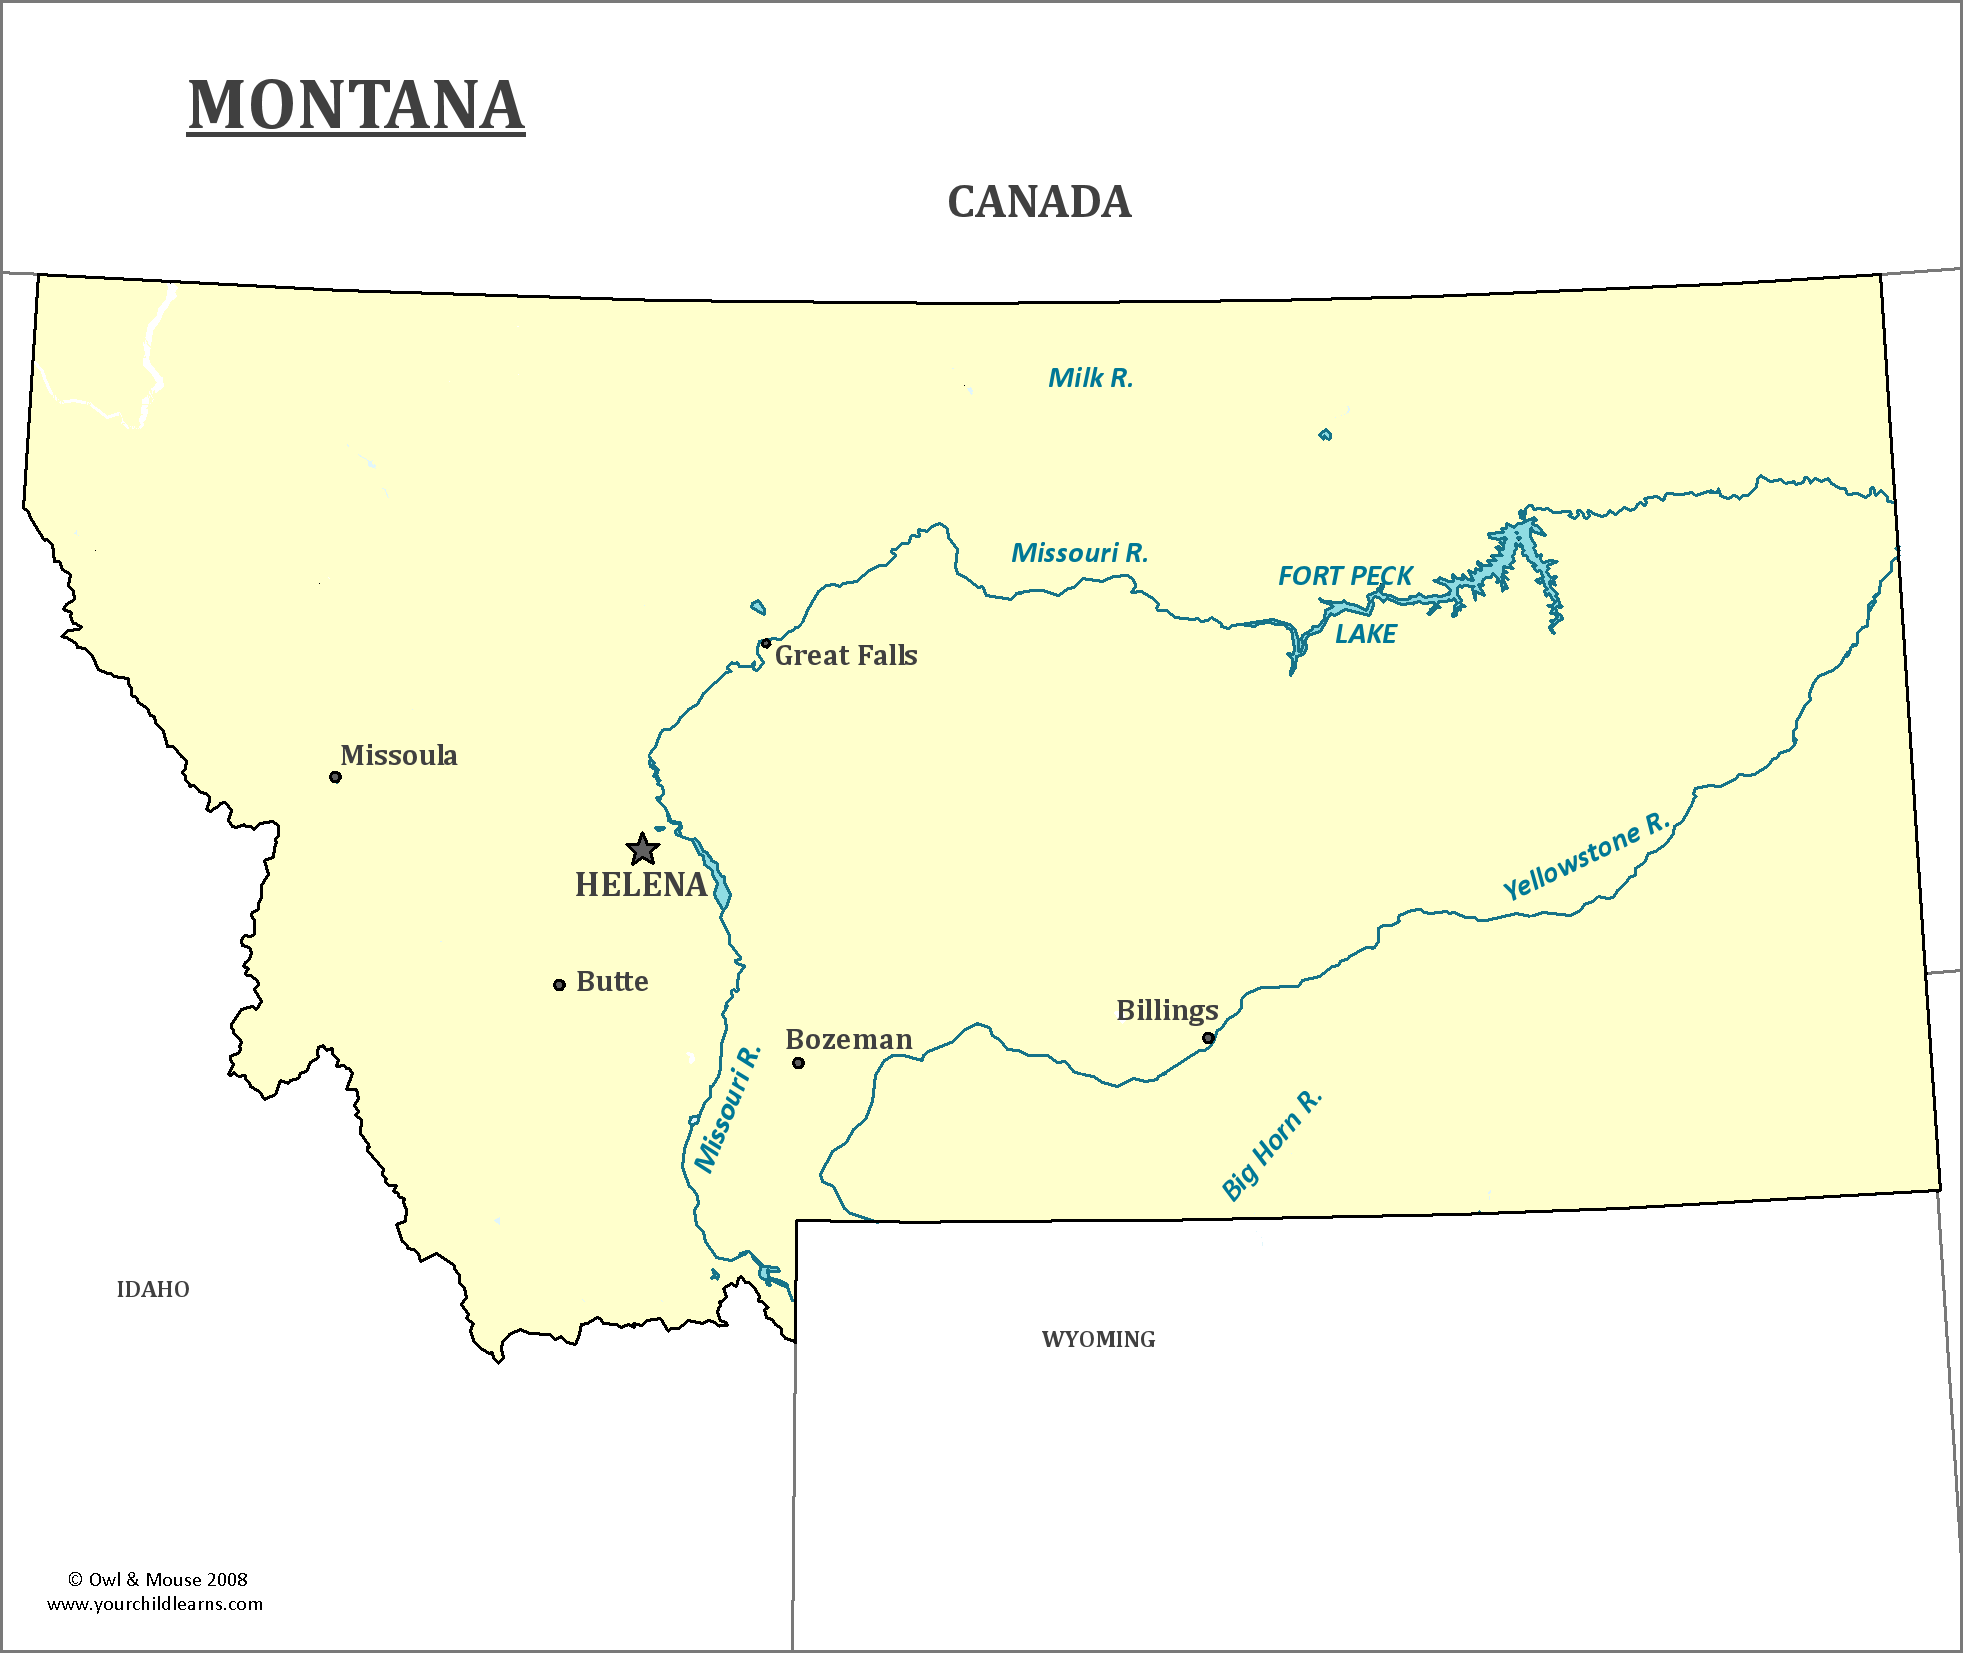 Montana State Map Map Of Montana And Information About The State - Montana map